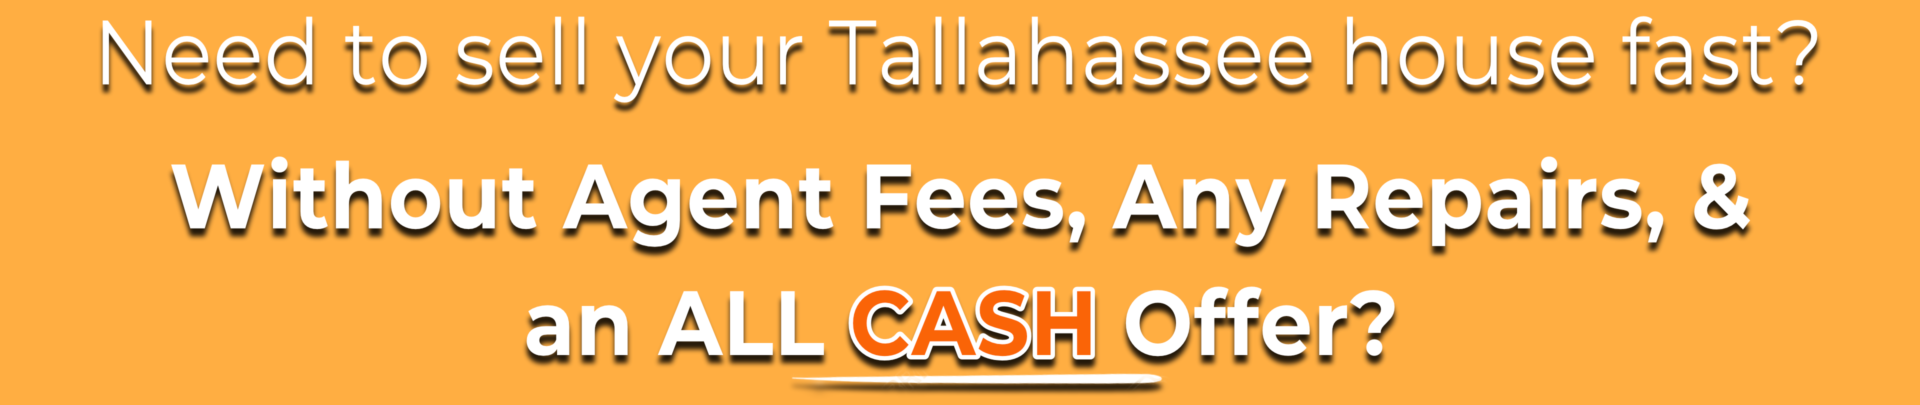 Sell My House Fast Tallahassee | We Buy Houses Tallahassee | Cash for Houses Tallahassee